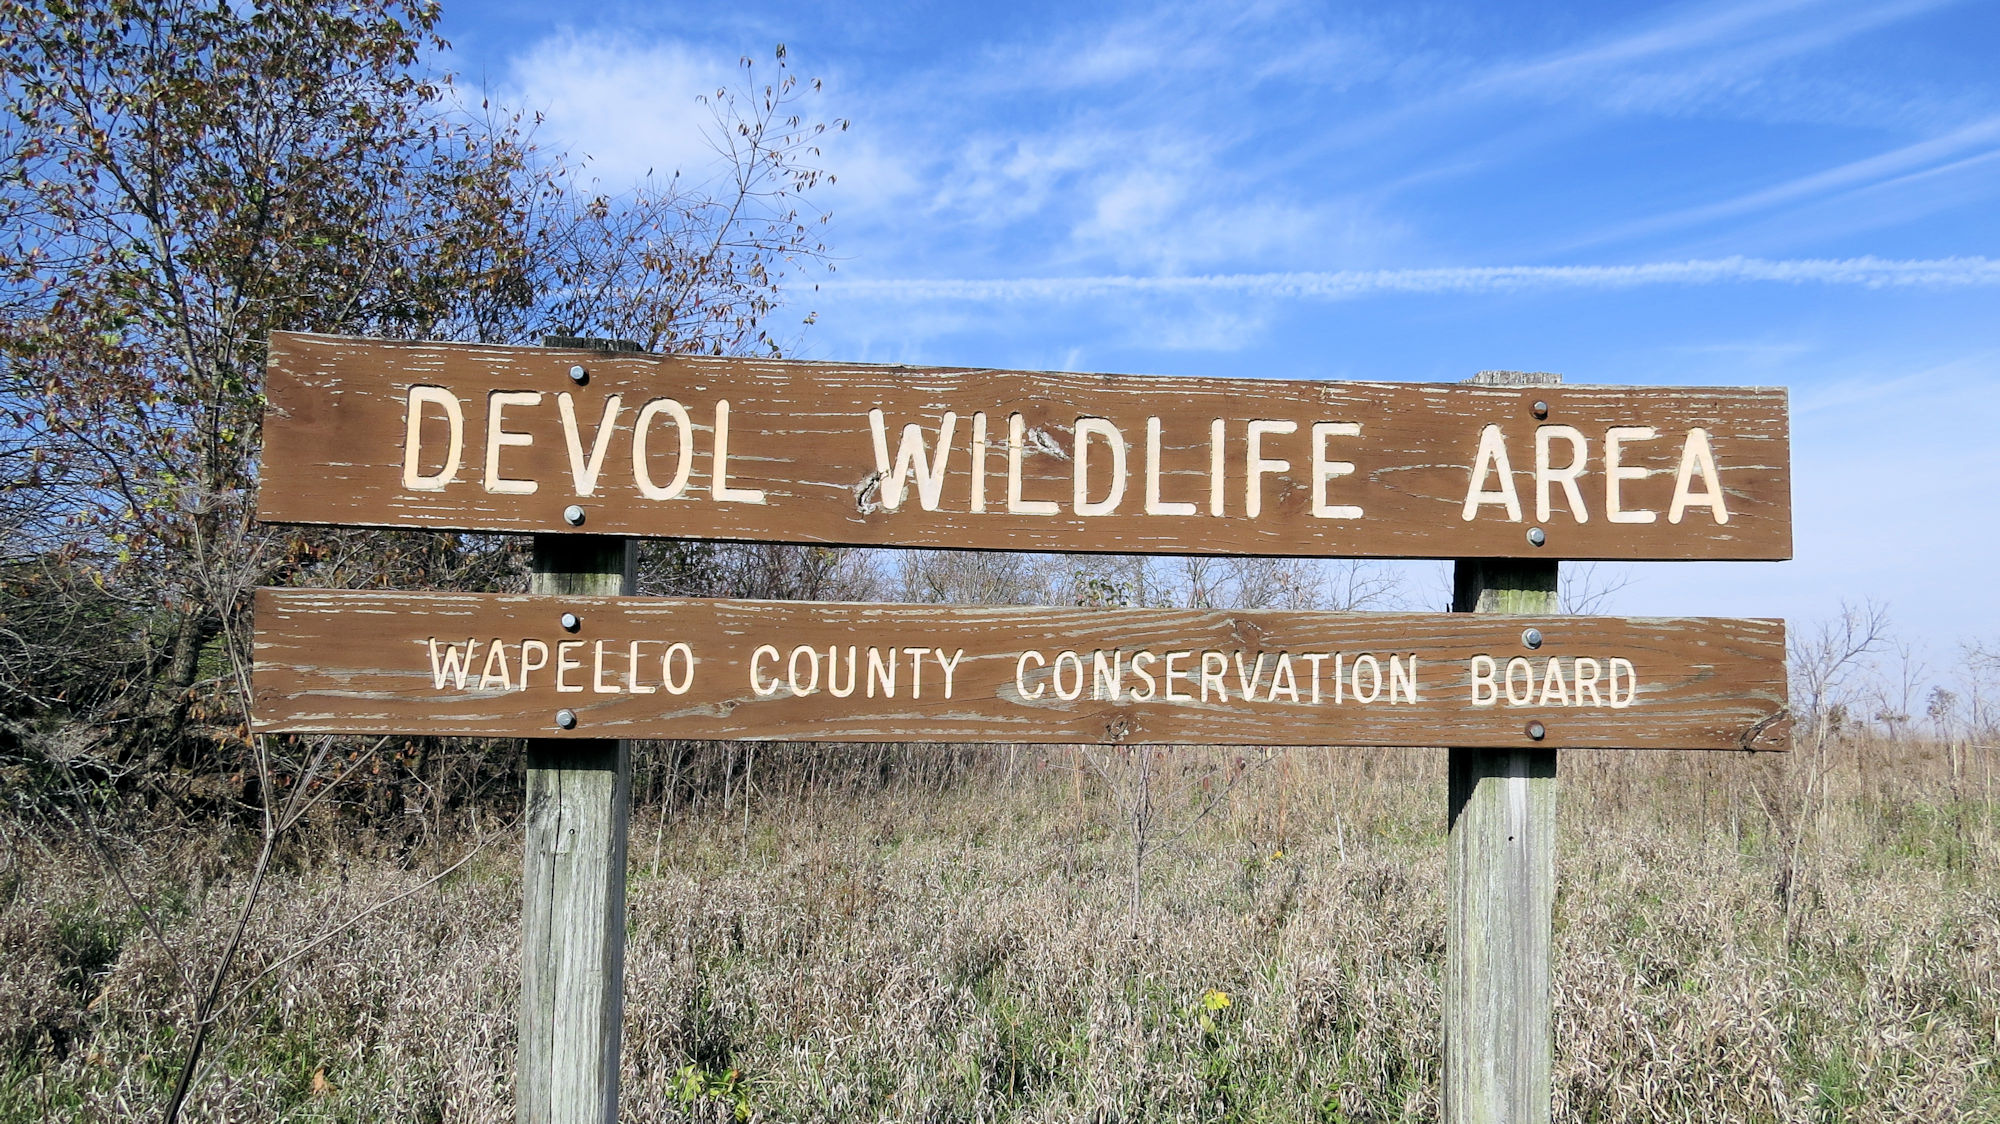 DeVol Wildlife Area sign